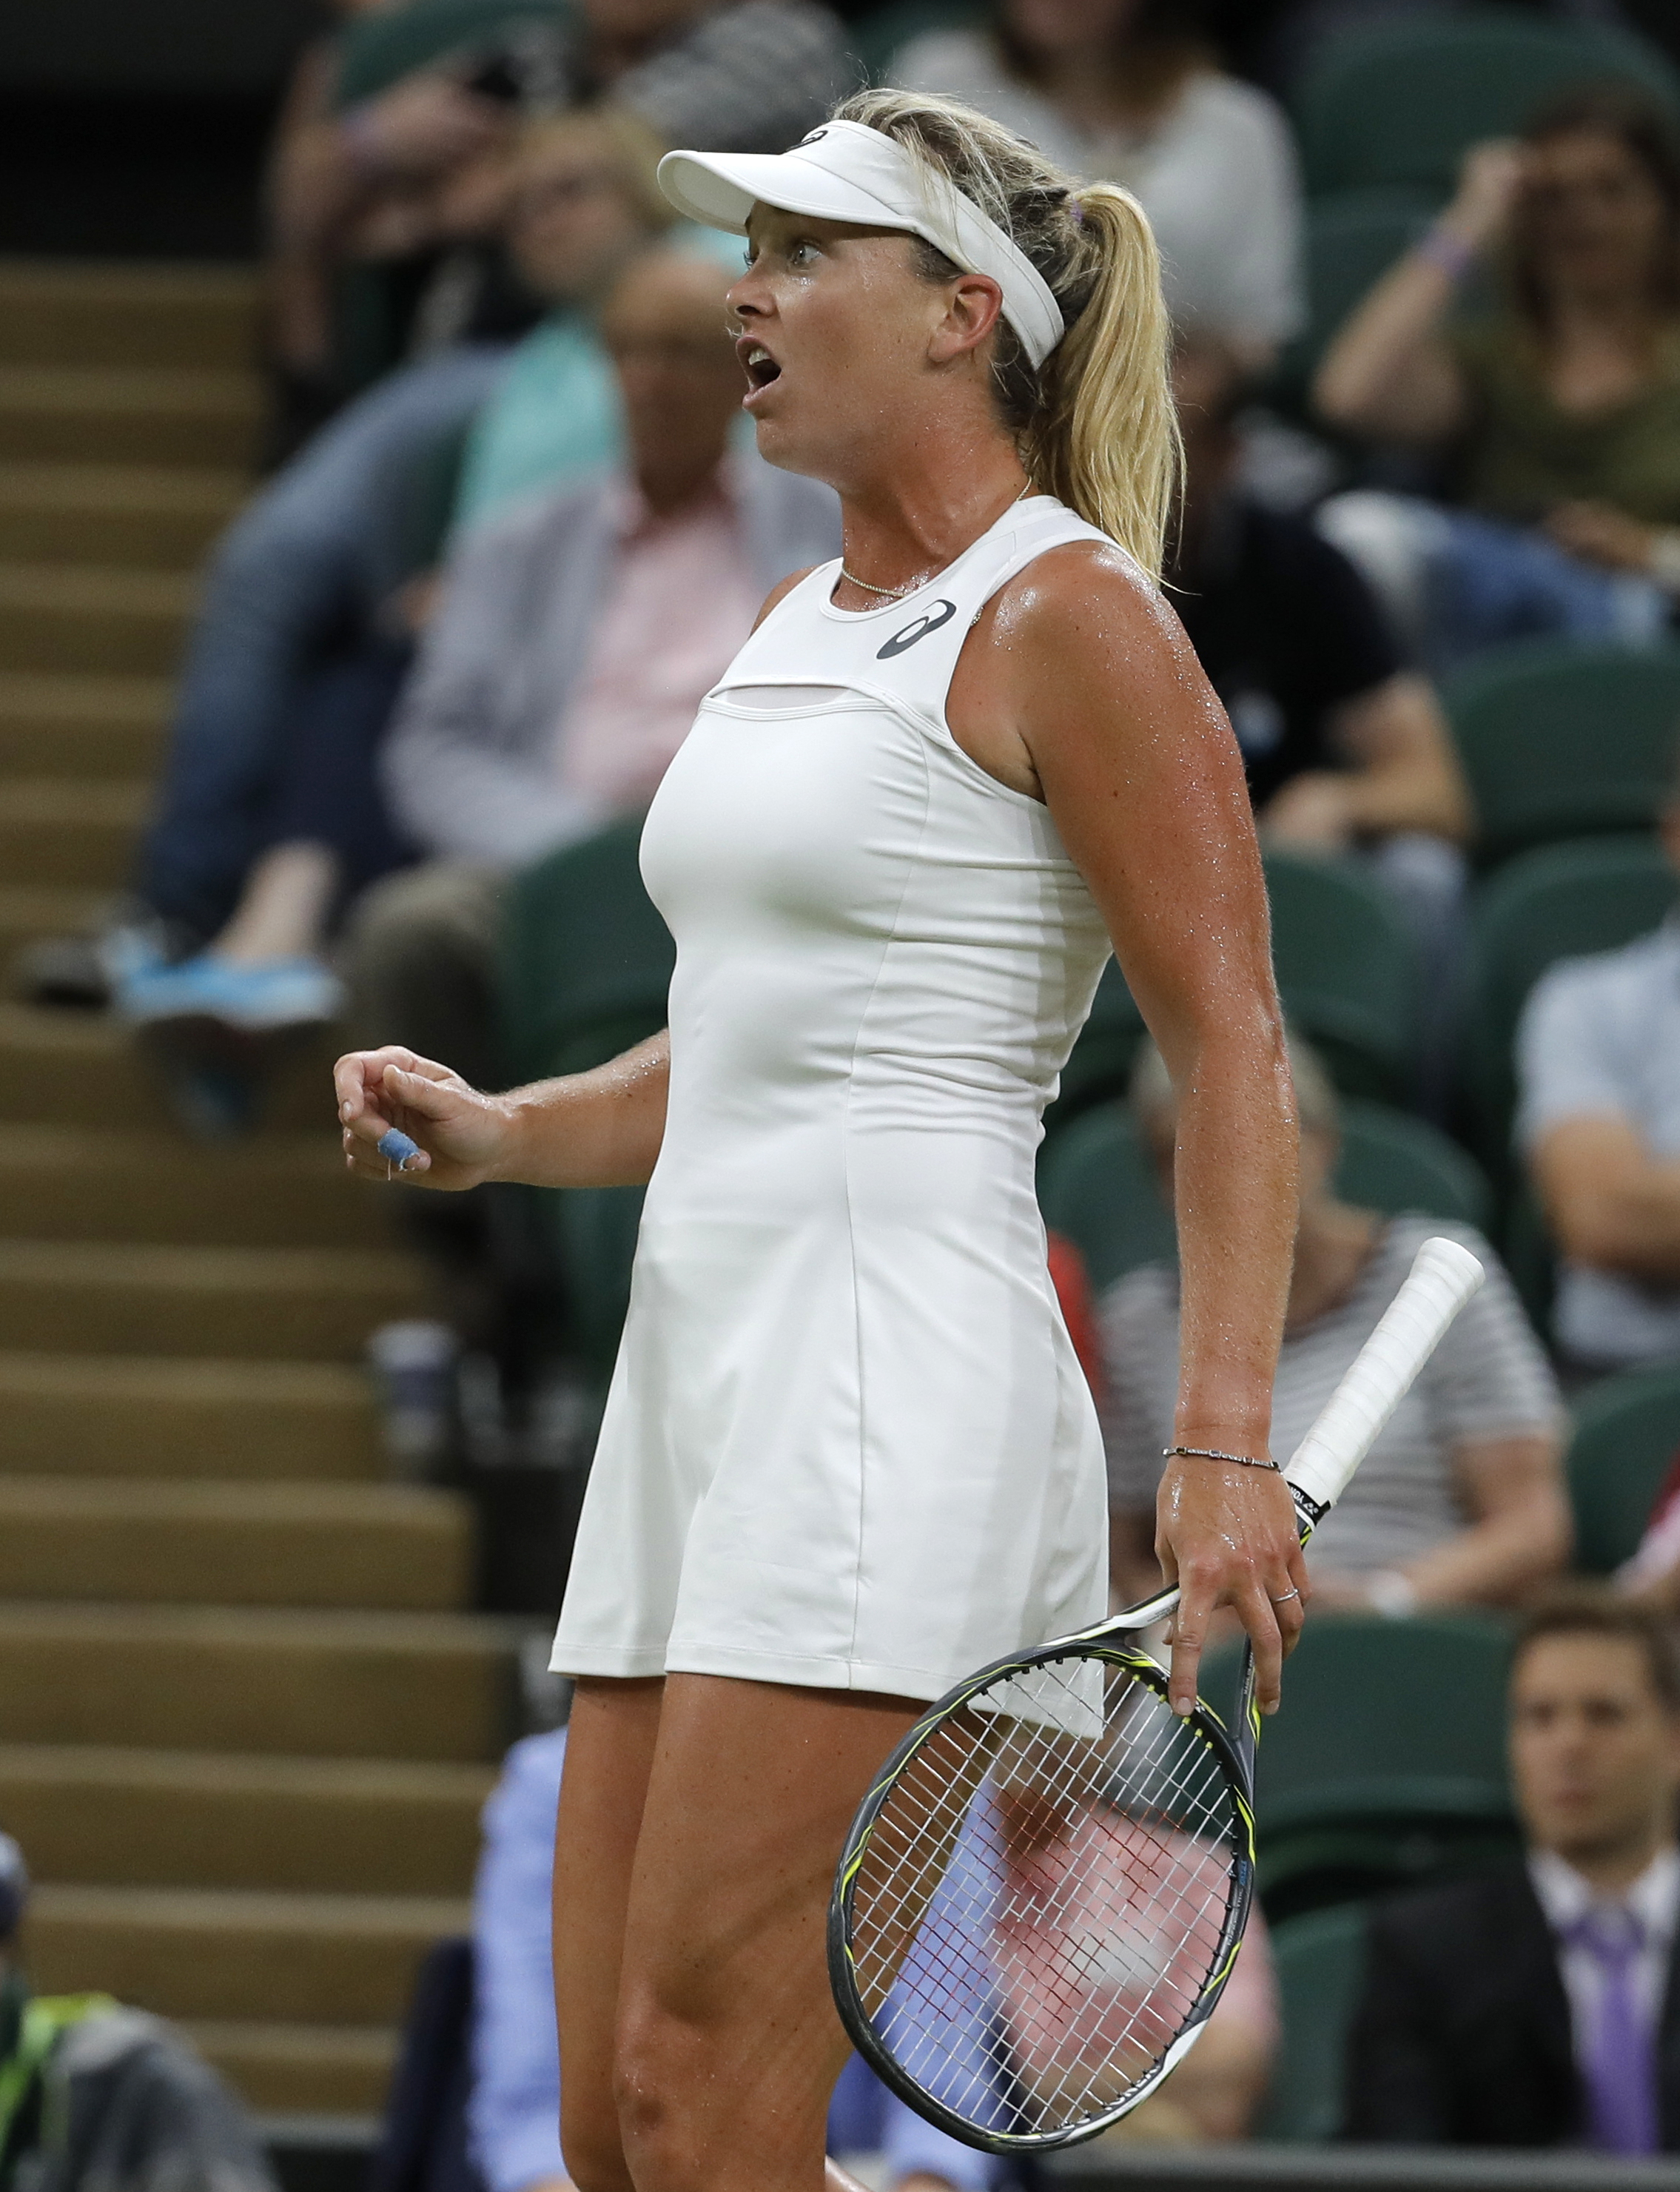 Coco Vandeweghe of the United States reacts after losing a point to Slovakia's Magdalena Rybarikova during their Women's Singles Match on day eight at the Wimbledon Tennis Championships in London Tuesday, July 11, 2017. (AP Photo/Alastair Grant)